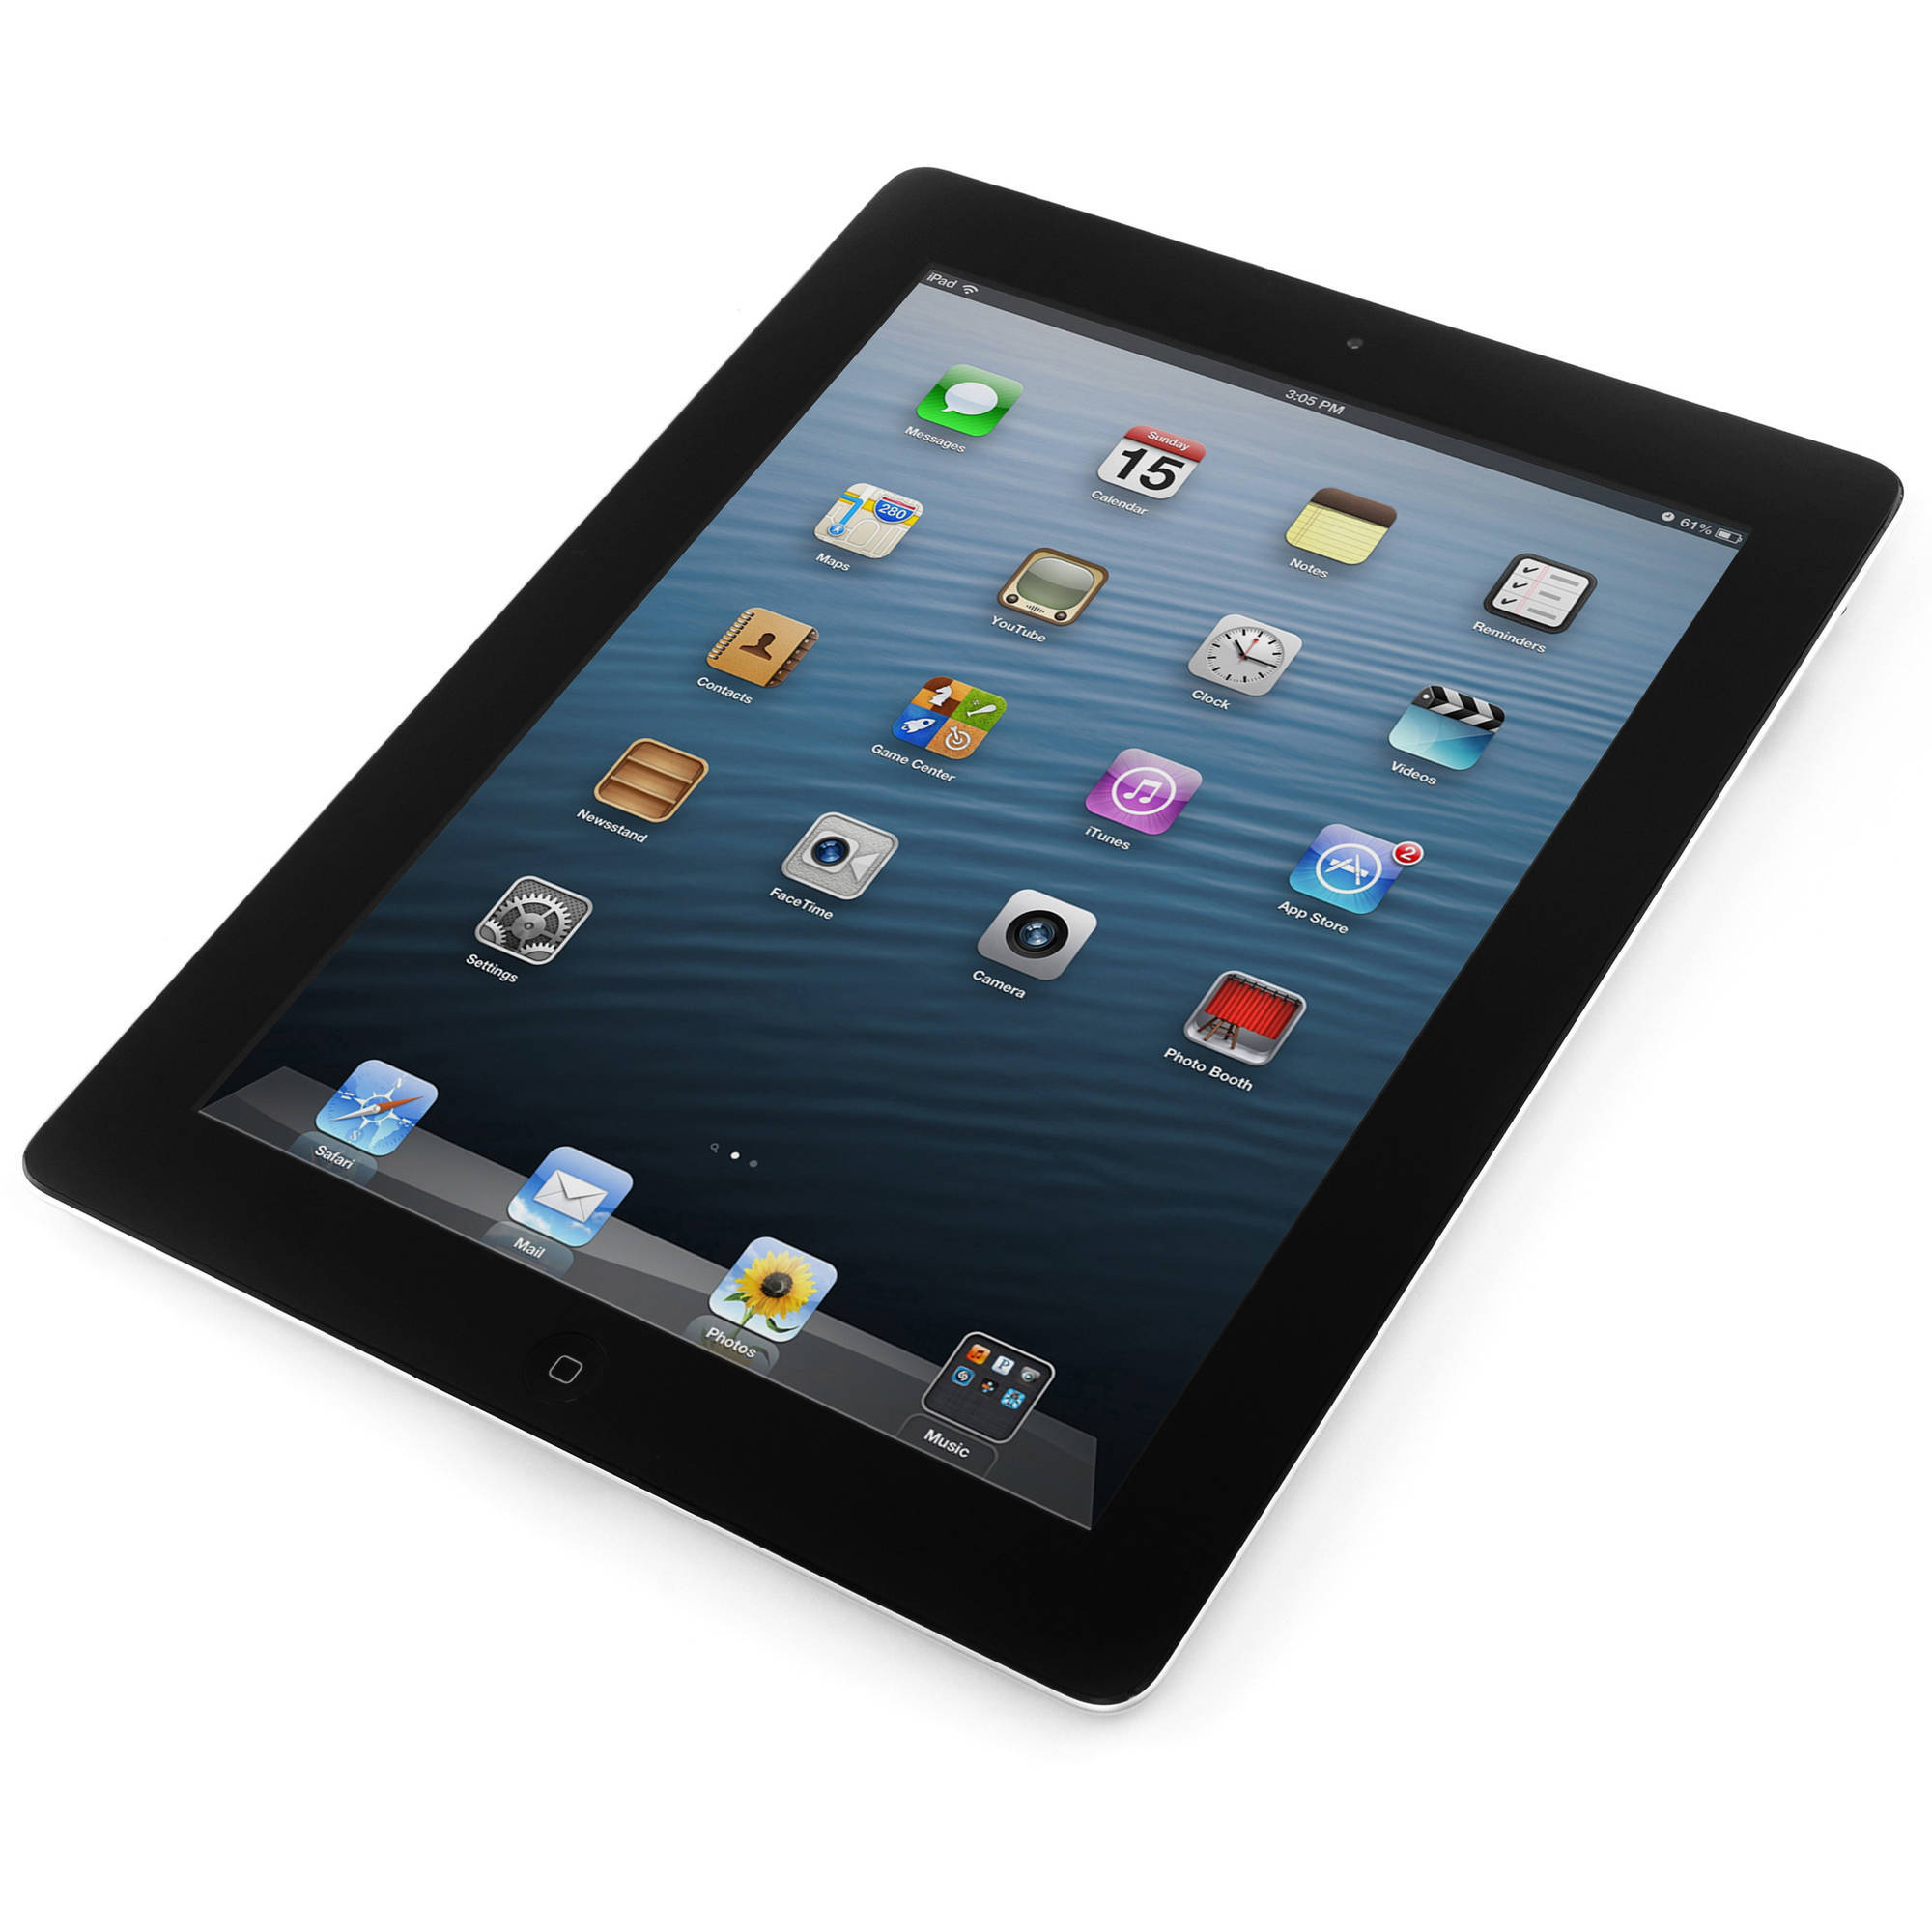 Apple iPad 2 16GB Wi-Fi A-Graded Refurbished